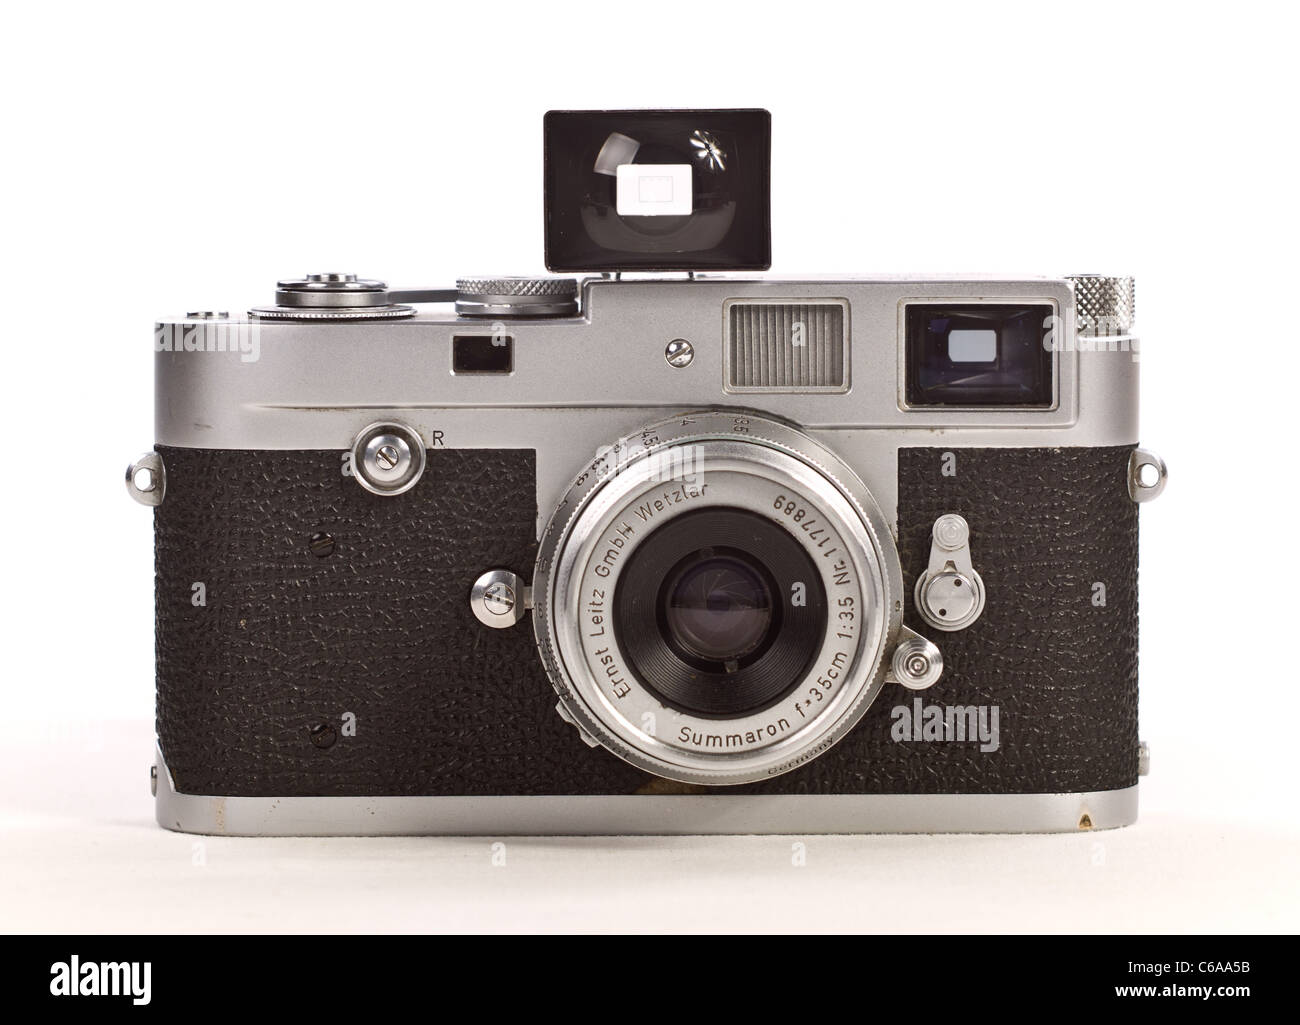 Leica Leitz M2 35mm Camera with 35mm Summaron Lens and Accesory